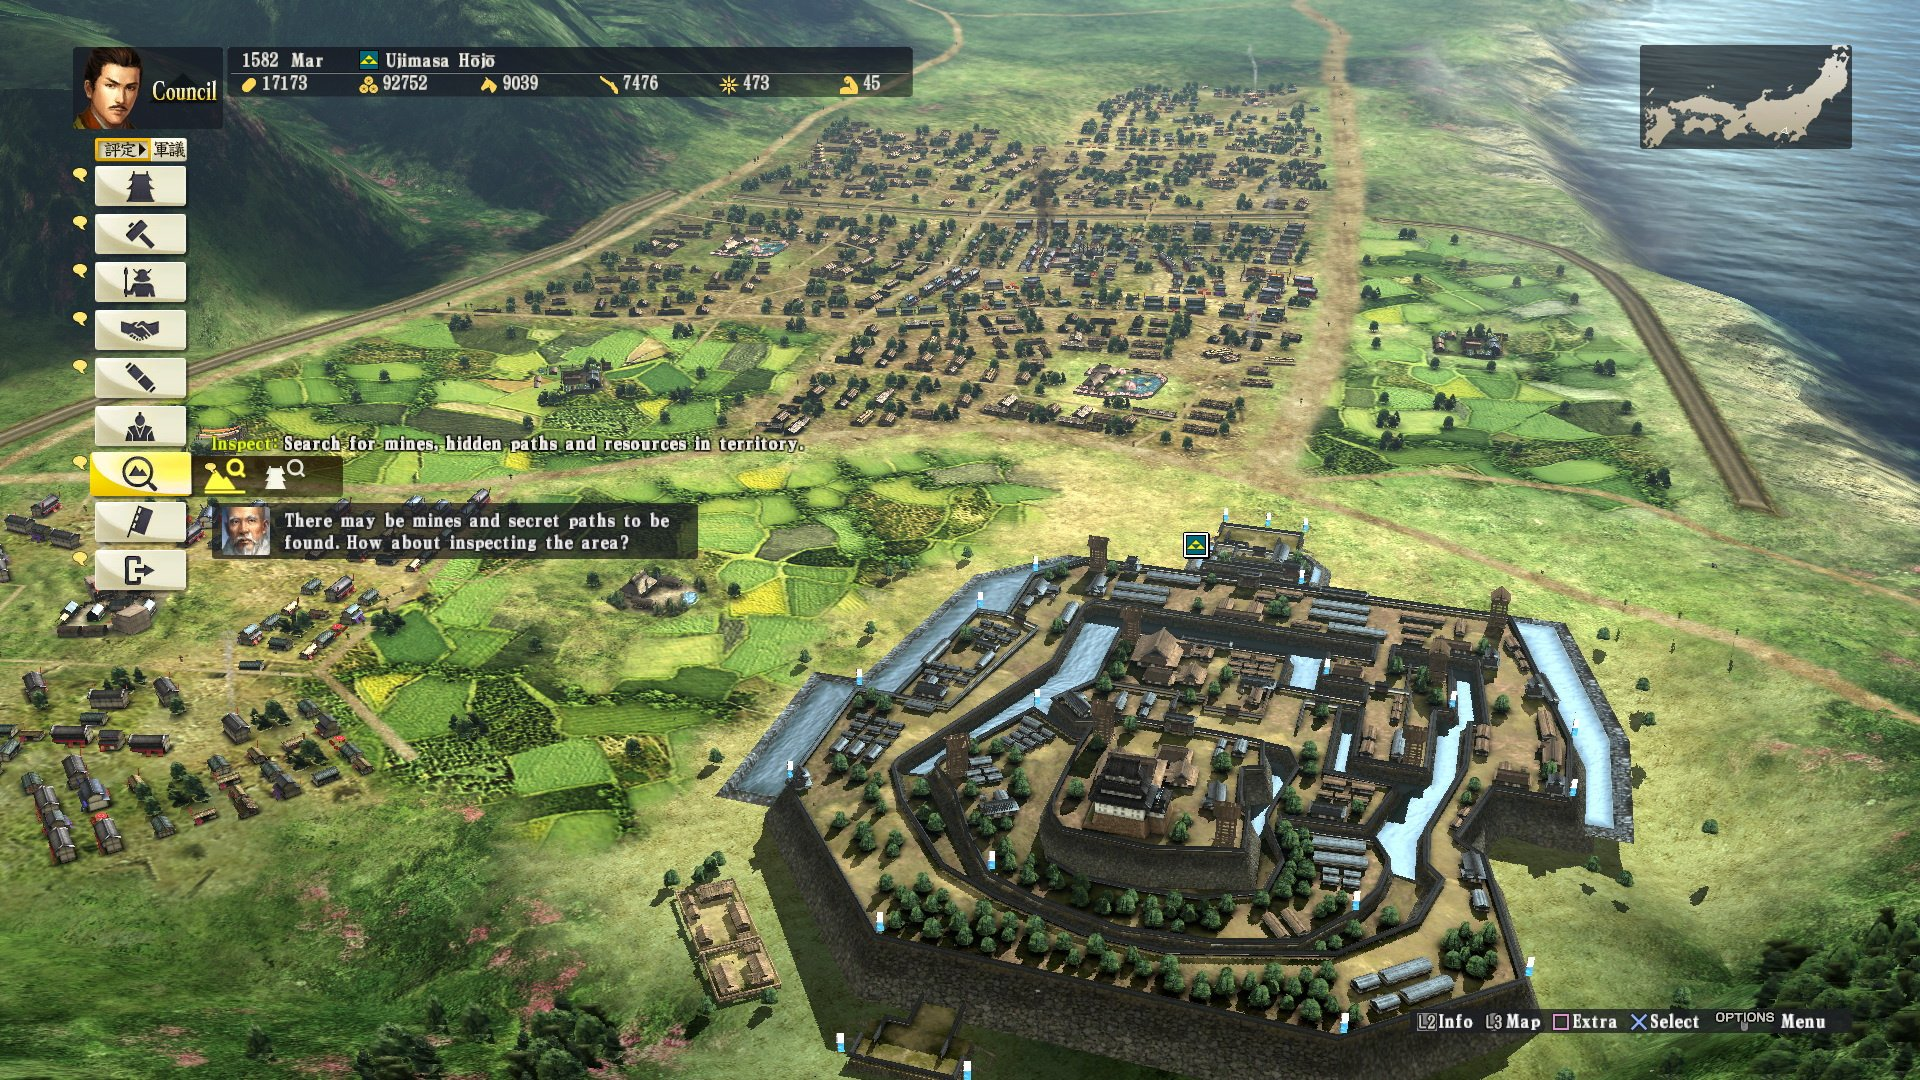 nobunaga 39 s ambition sphere of influence ps4 playstation 4 news reviews trailer screenshots. Black Bedroom Furniture Sets. Home Design Ideas